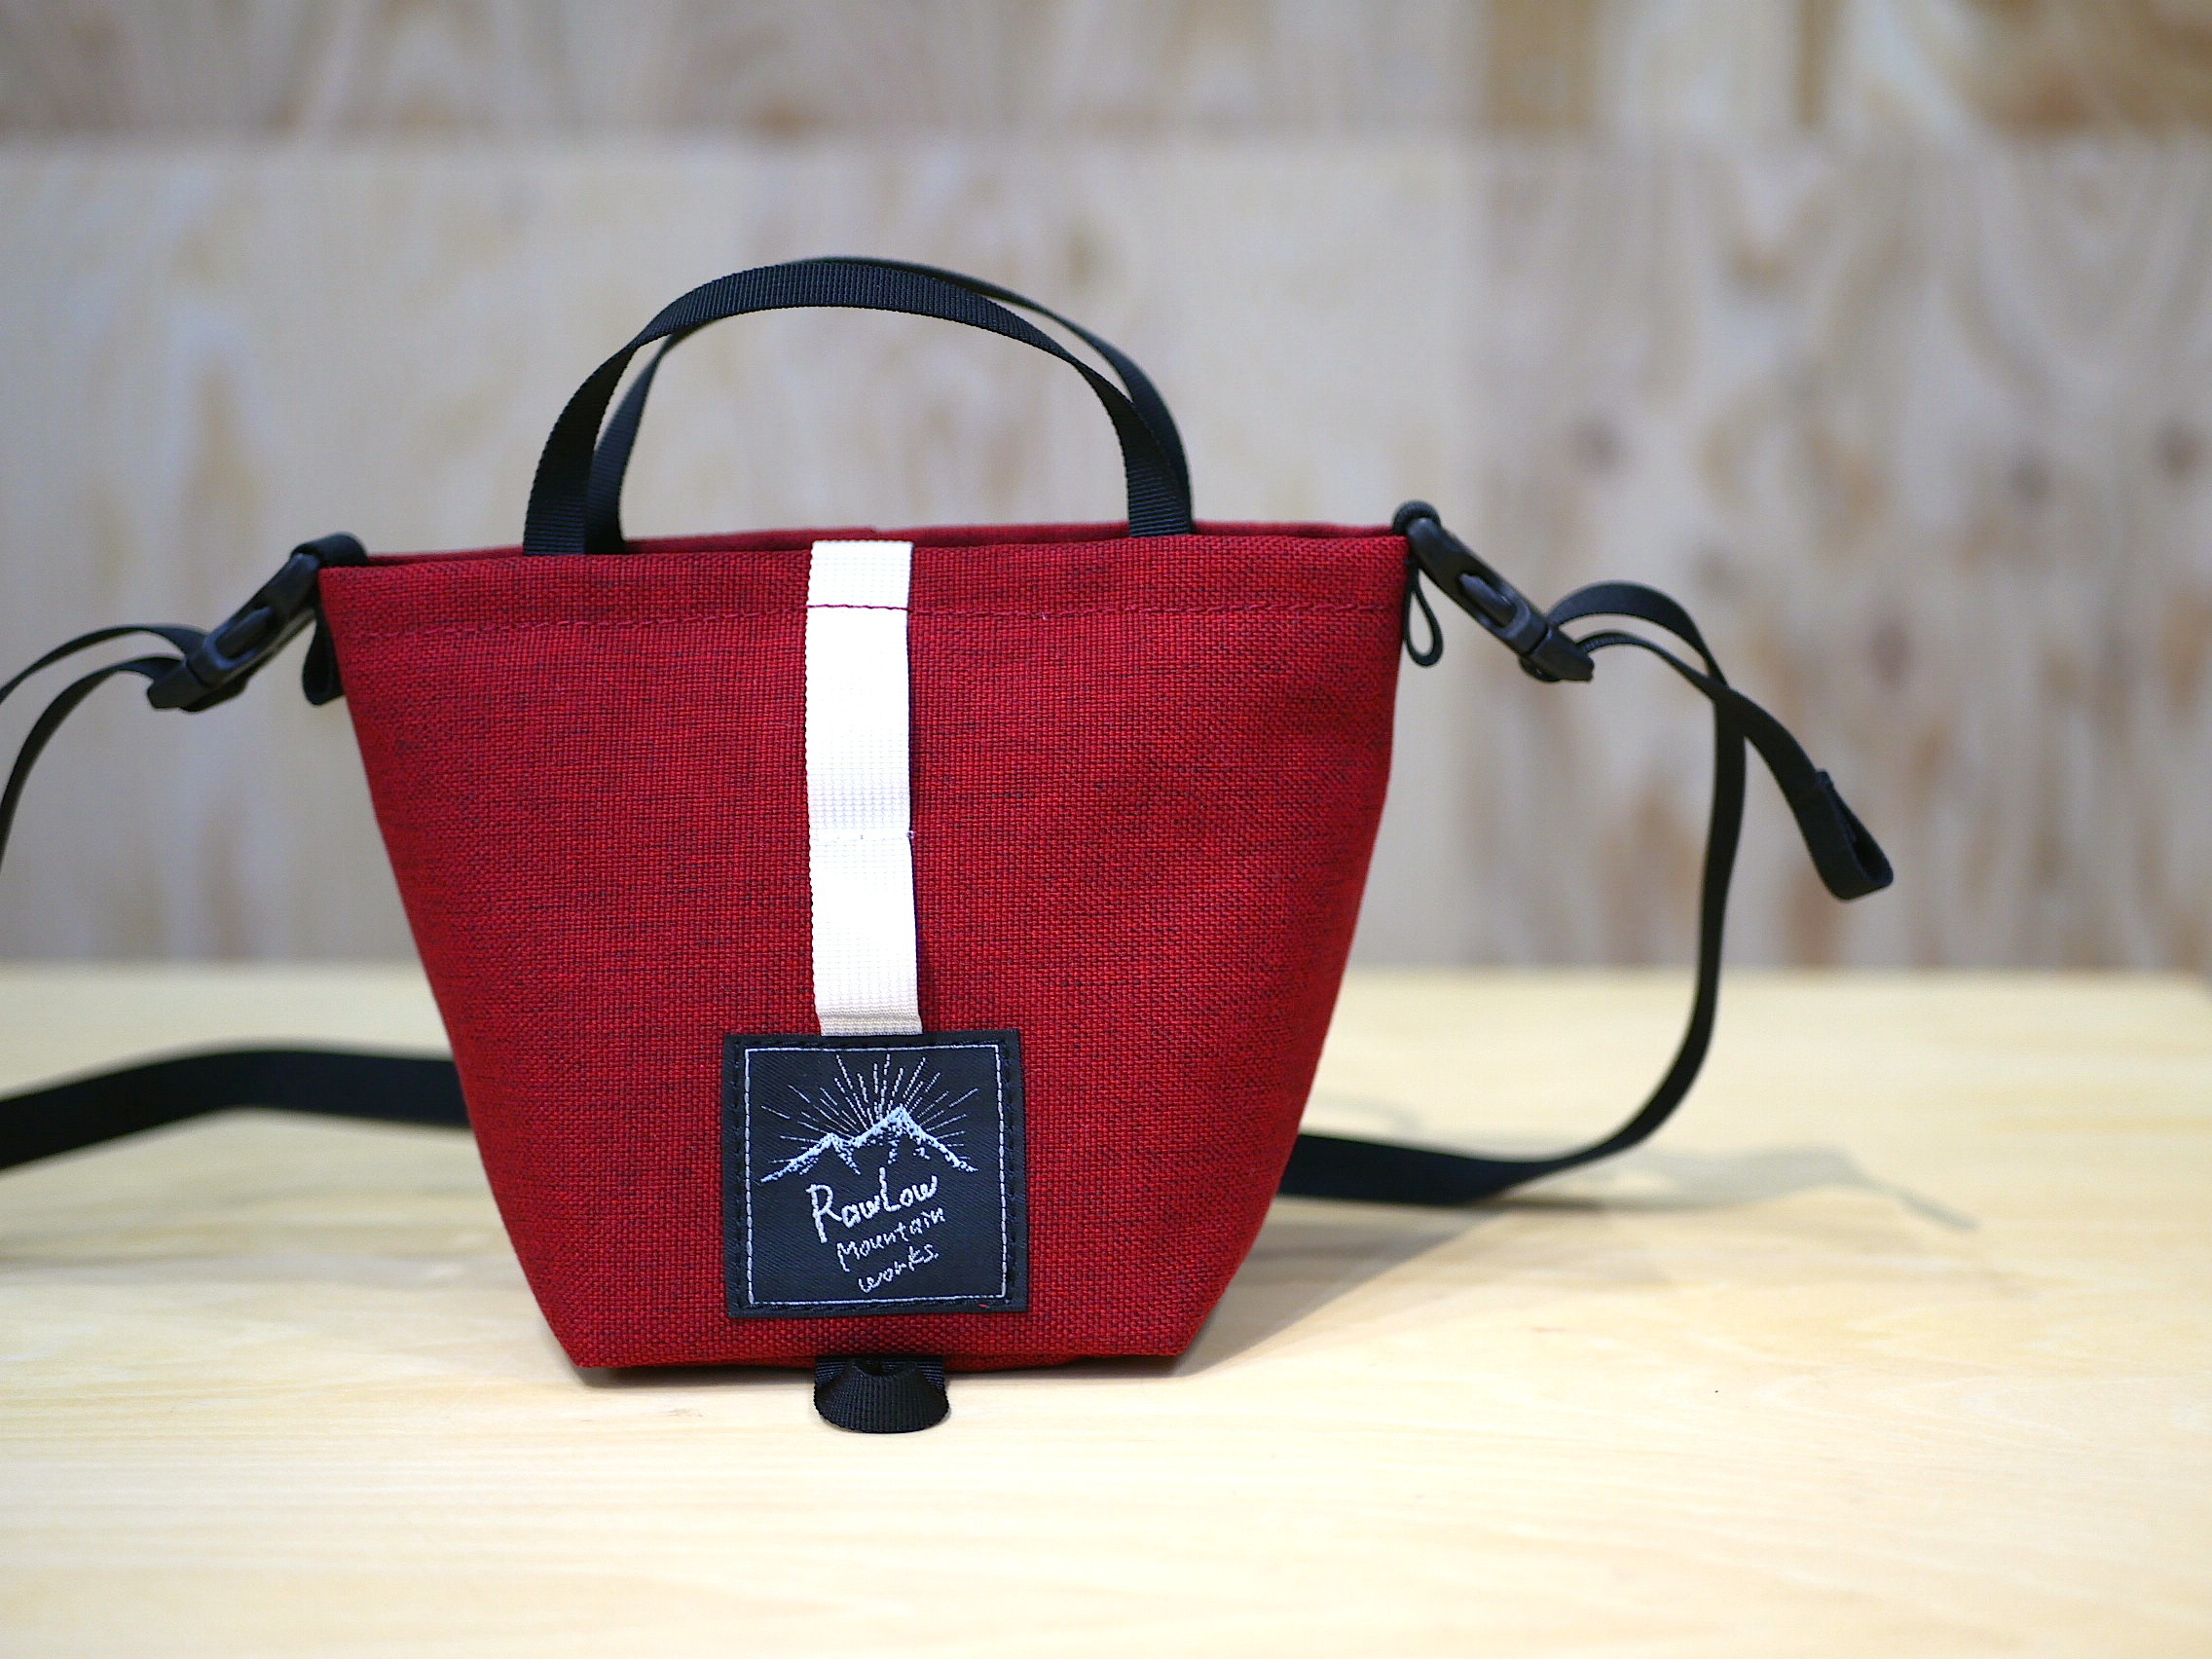 RAWLOW MOUNTAIN WORKS / TIBITIBI TOTE (CANDY APPLE RED)